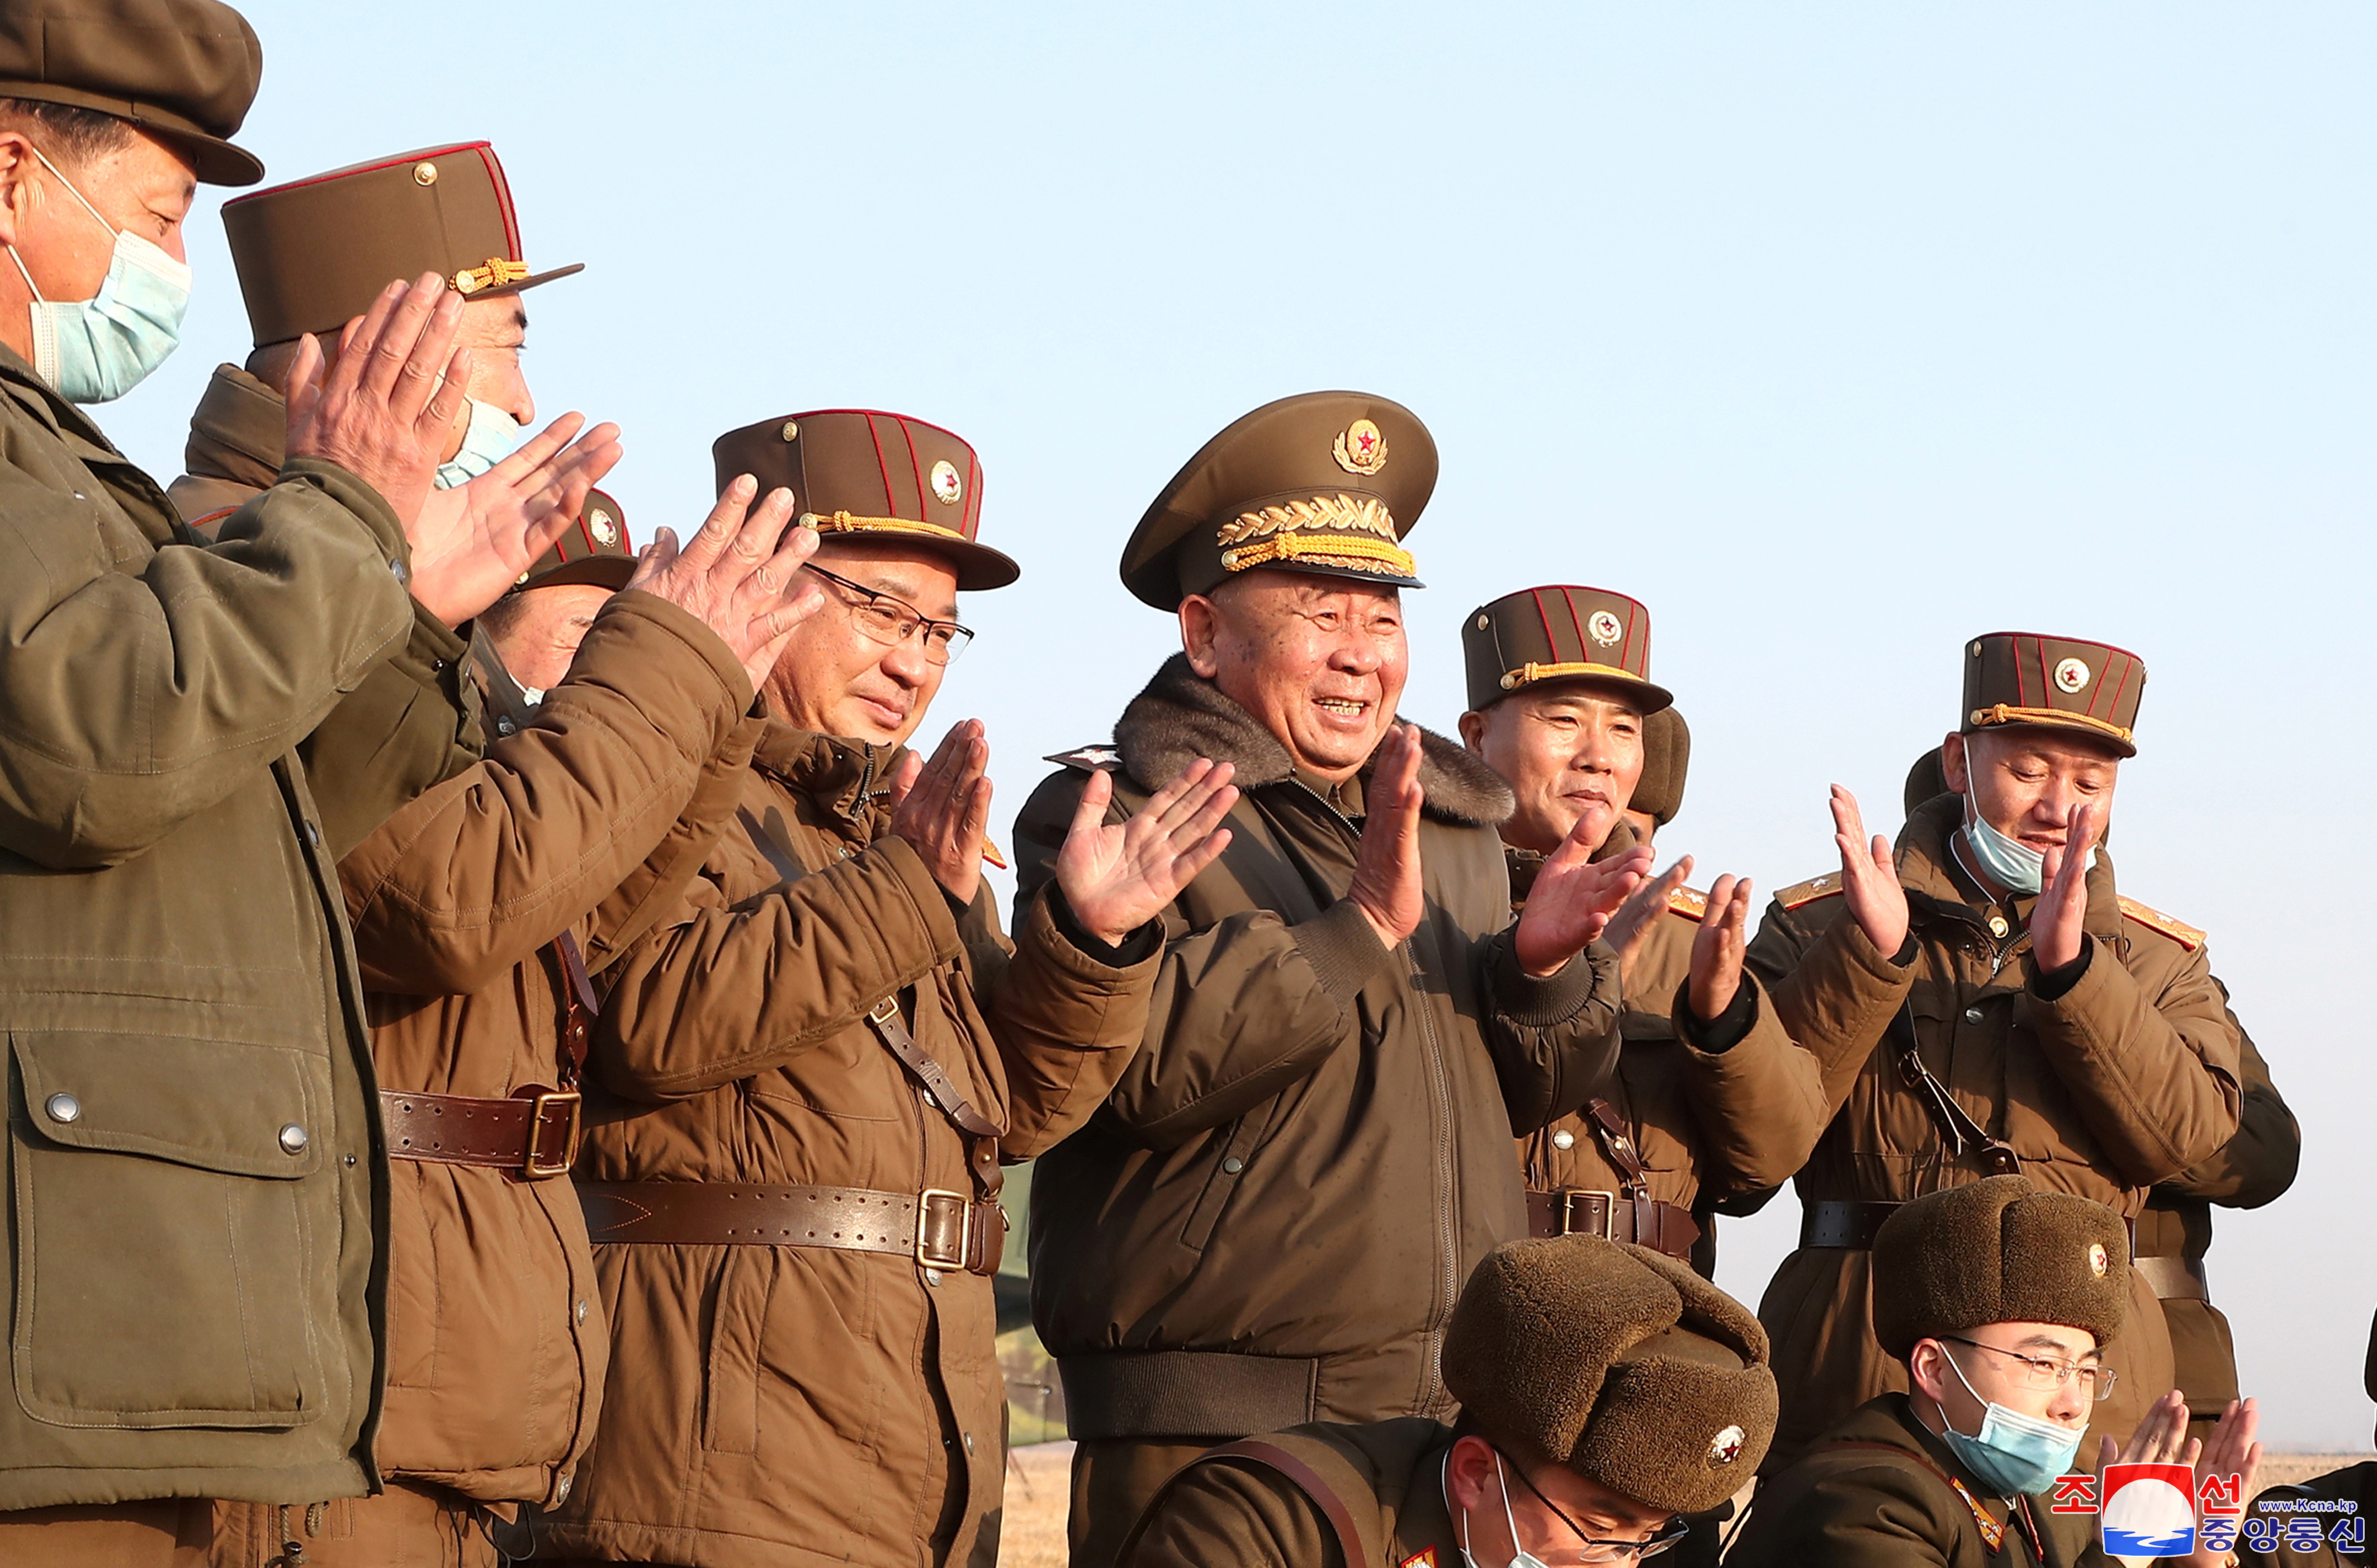 Ri Pyong Chol, the senior leader who is overseeing the test, and other military officials applaud after the launch of a newly developed new-type tactical guided projectile on March 25, 2021 in this photo released March 26, 2021 by North Korea's Korean Central News Agency (KCNA) in Pyongyang, North Korea. KCNA via REUTERS